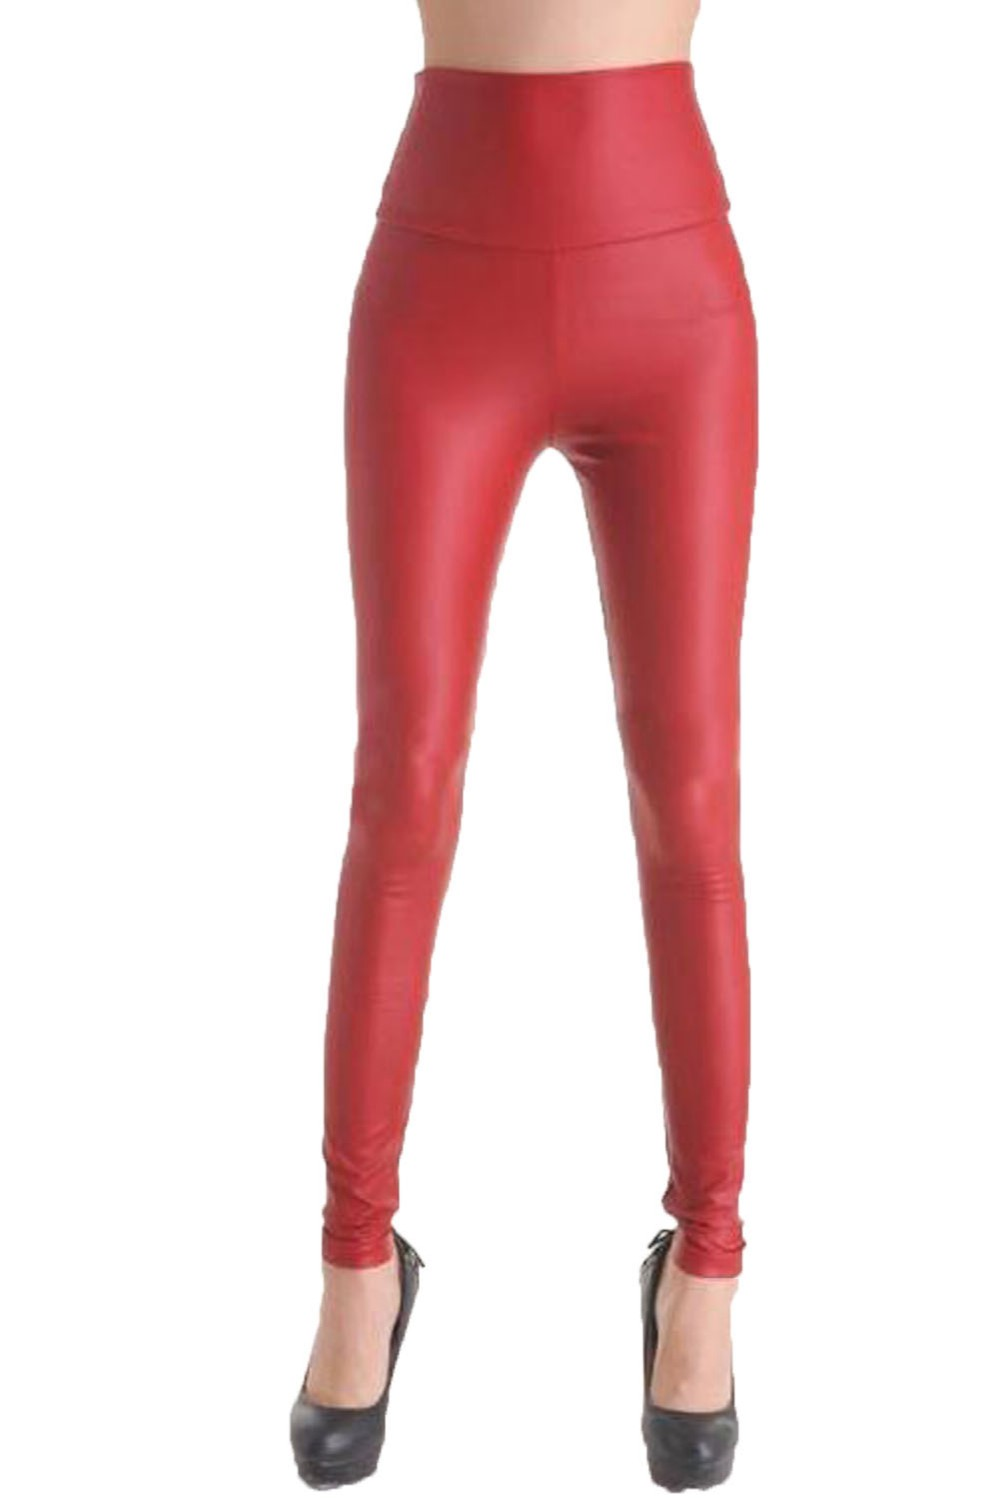 Fashion-Red-Faux-Leather-Leggings-LC7748-3-3